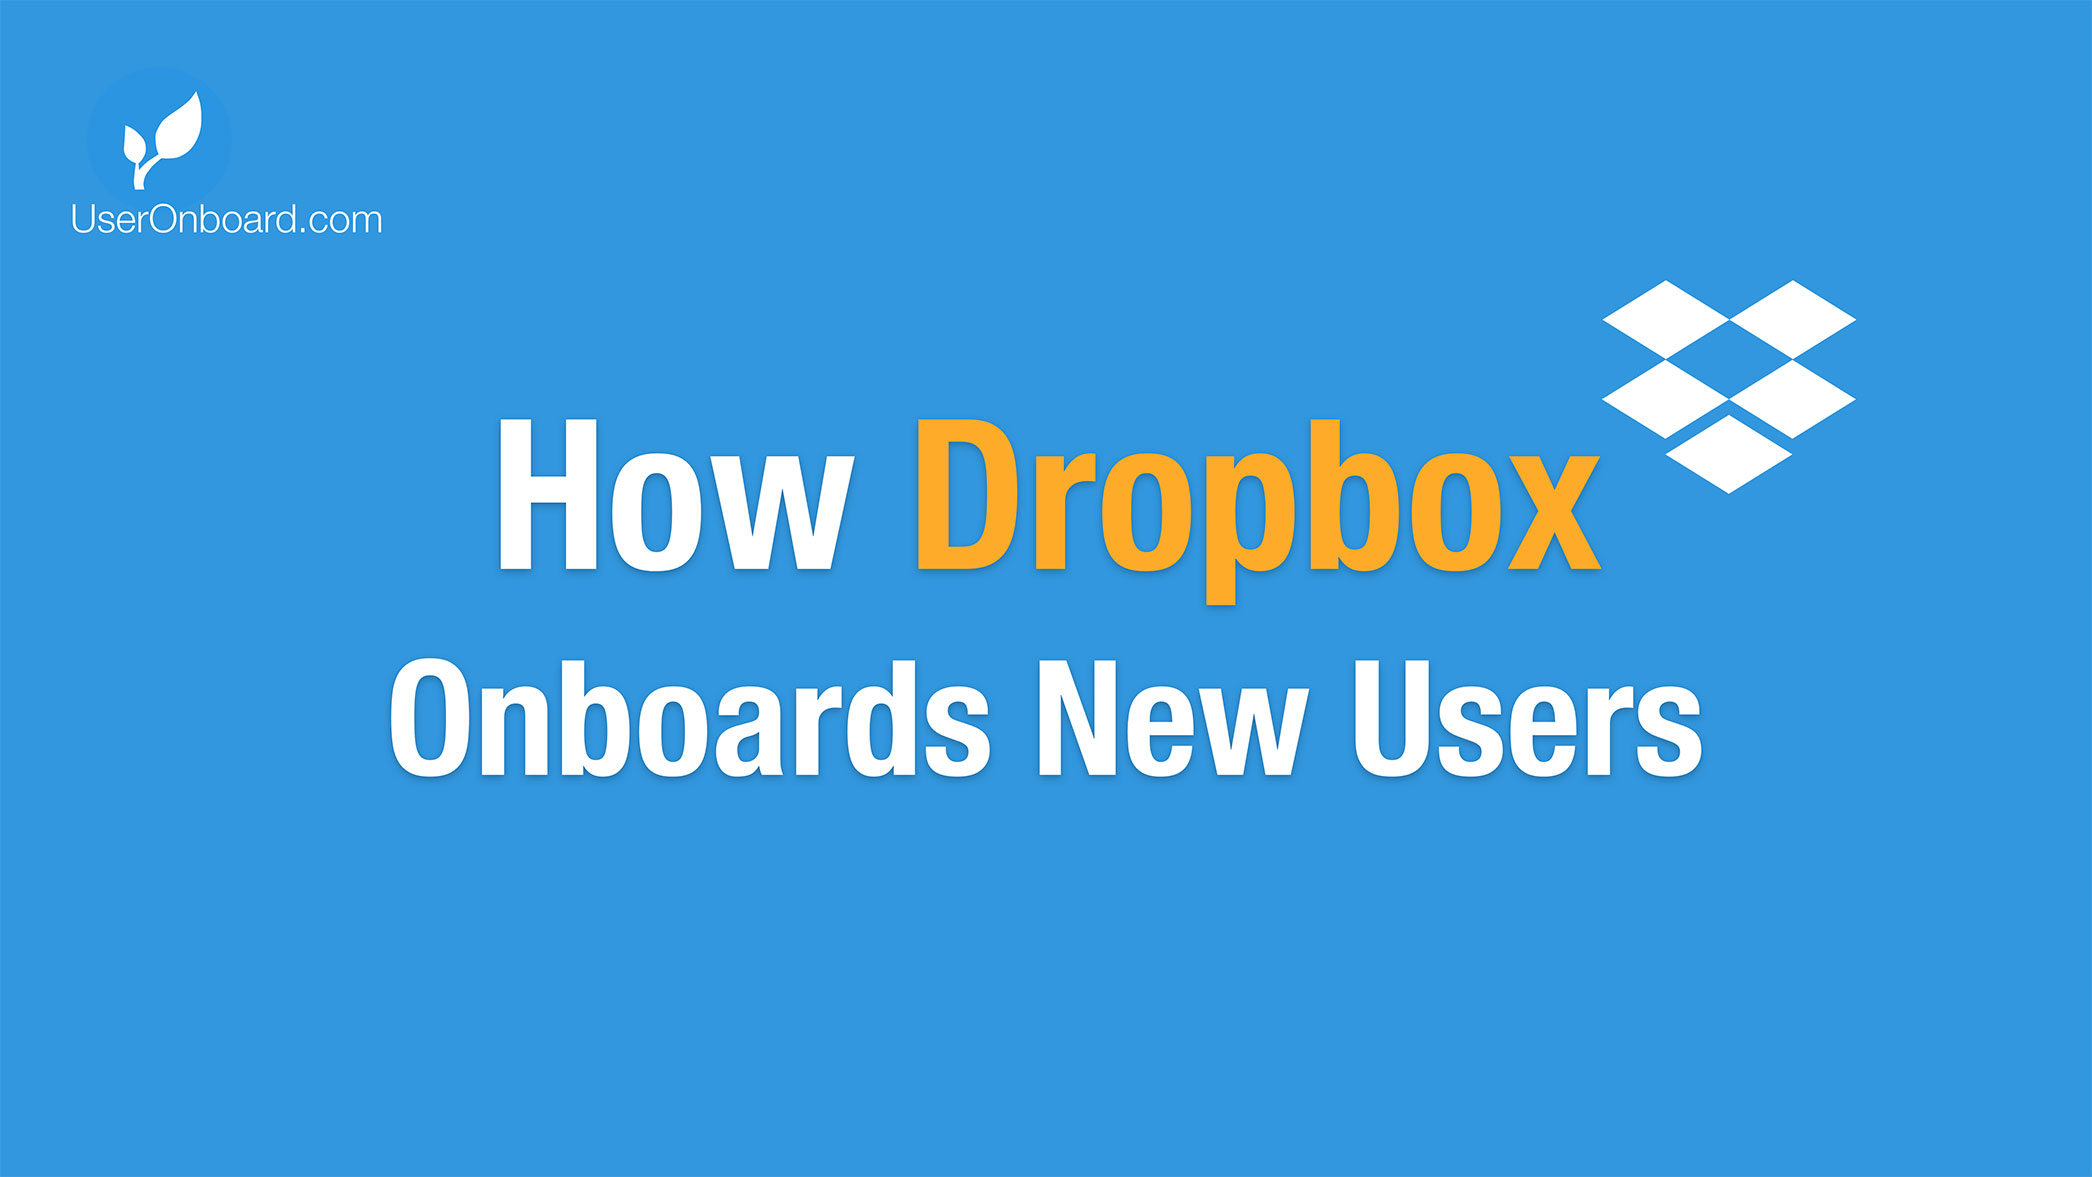 How Dropbox Onboards New Users